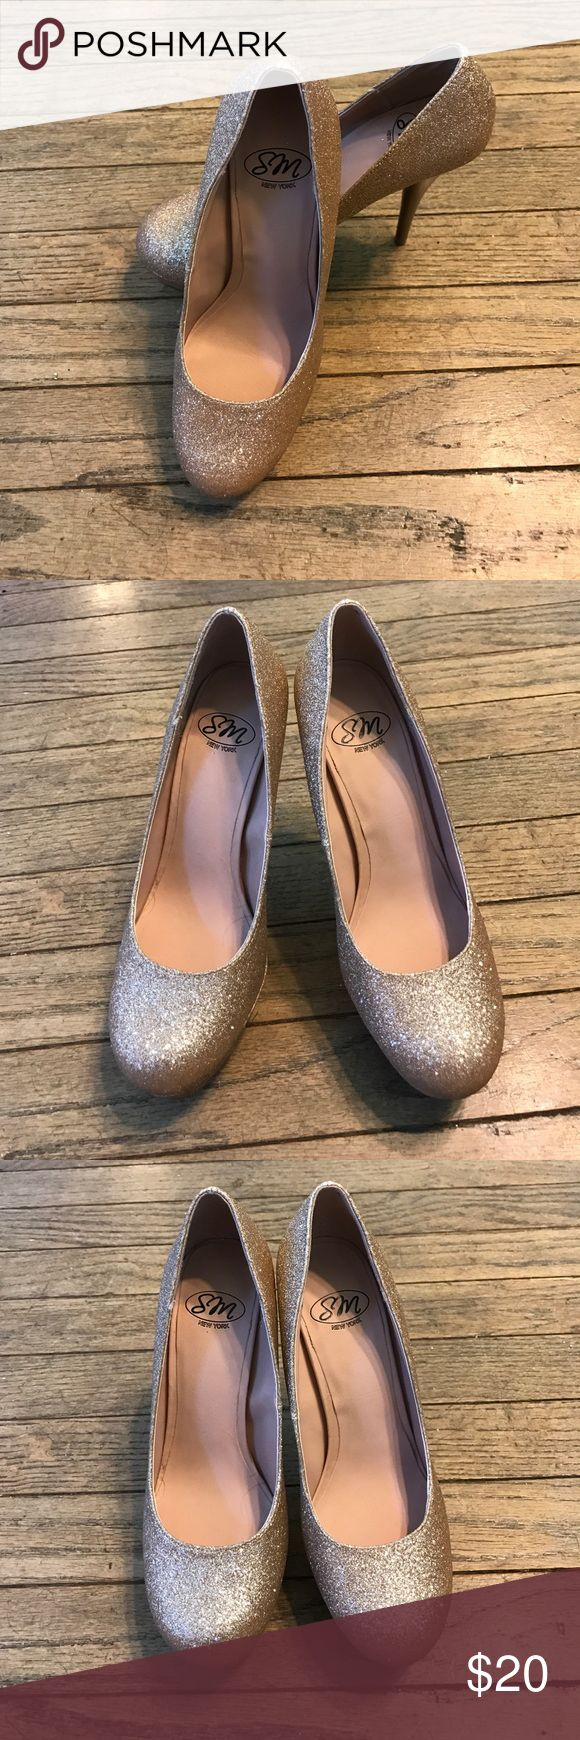 """Gold Sparkly Heels Adorable gold sparkly heels. Brand new and never worn. Perfect for a night out with a simple black dress. Also perfect for prom! The heel is 5"""". From a smoke free home. SM New York Shoes Platforms"""